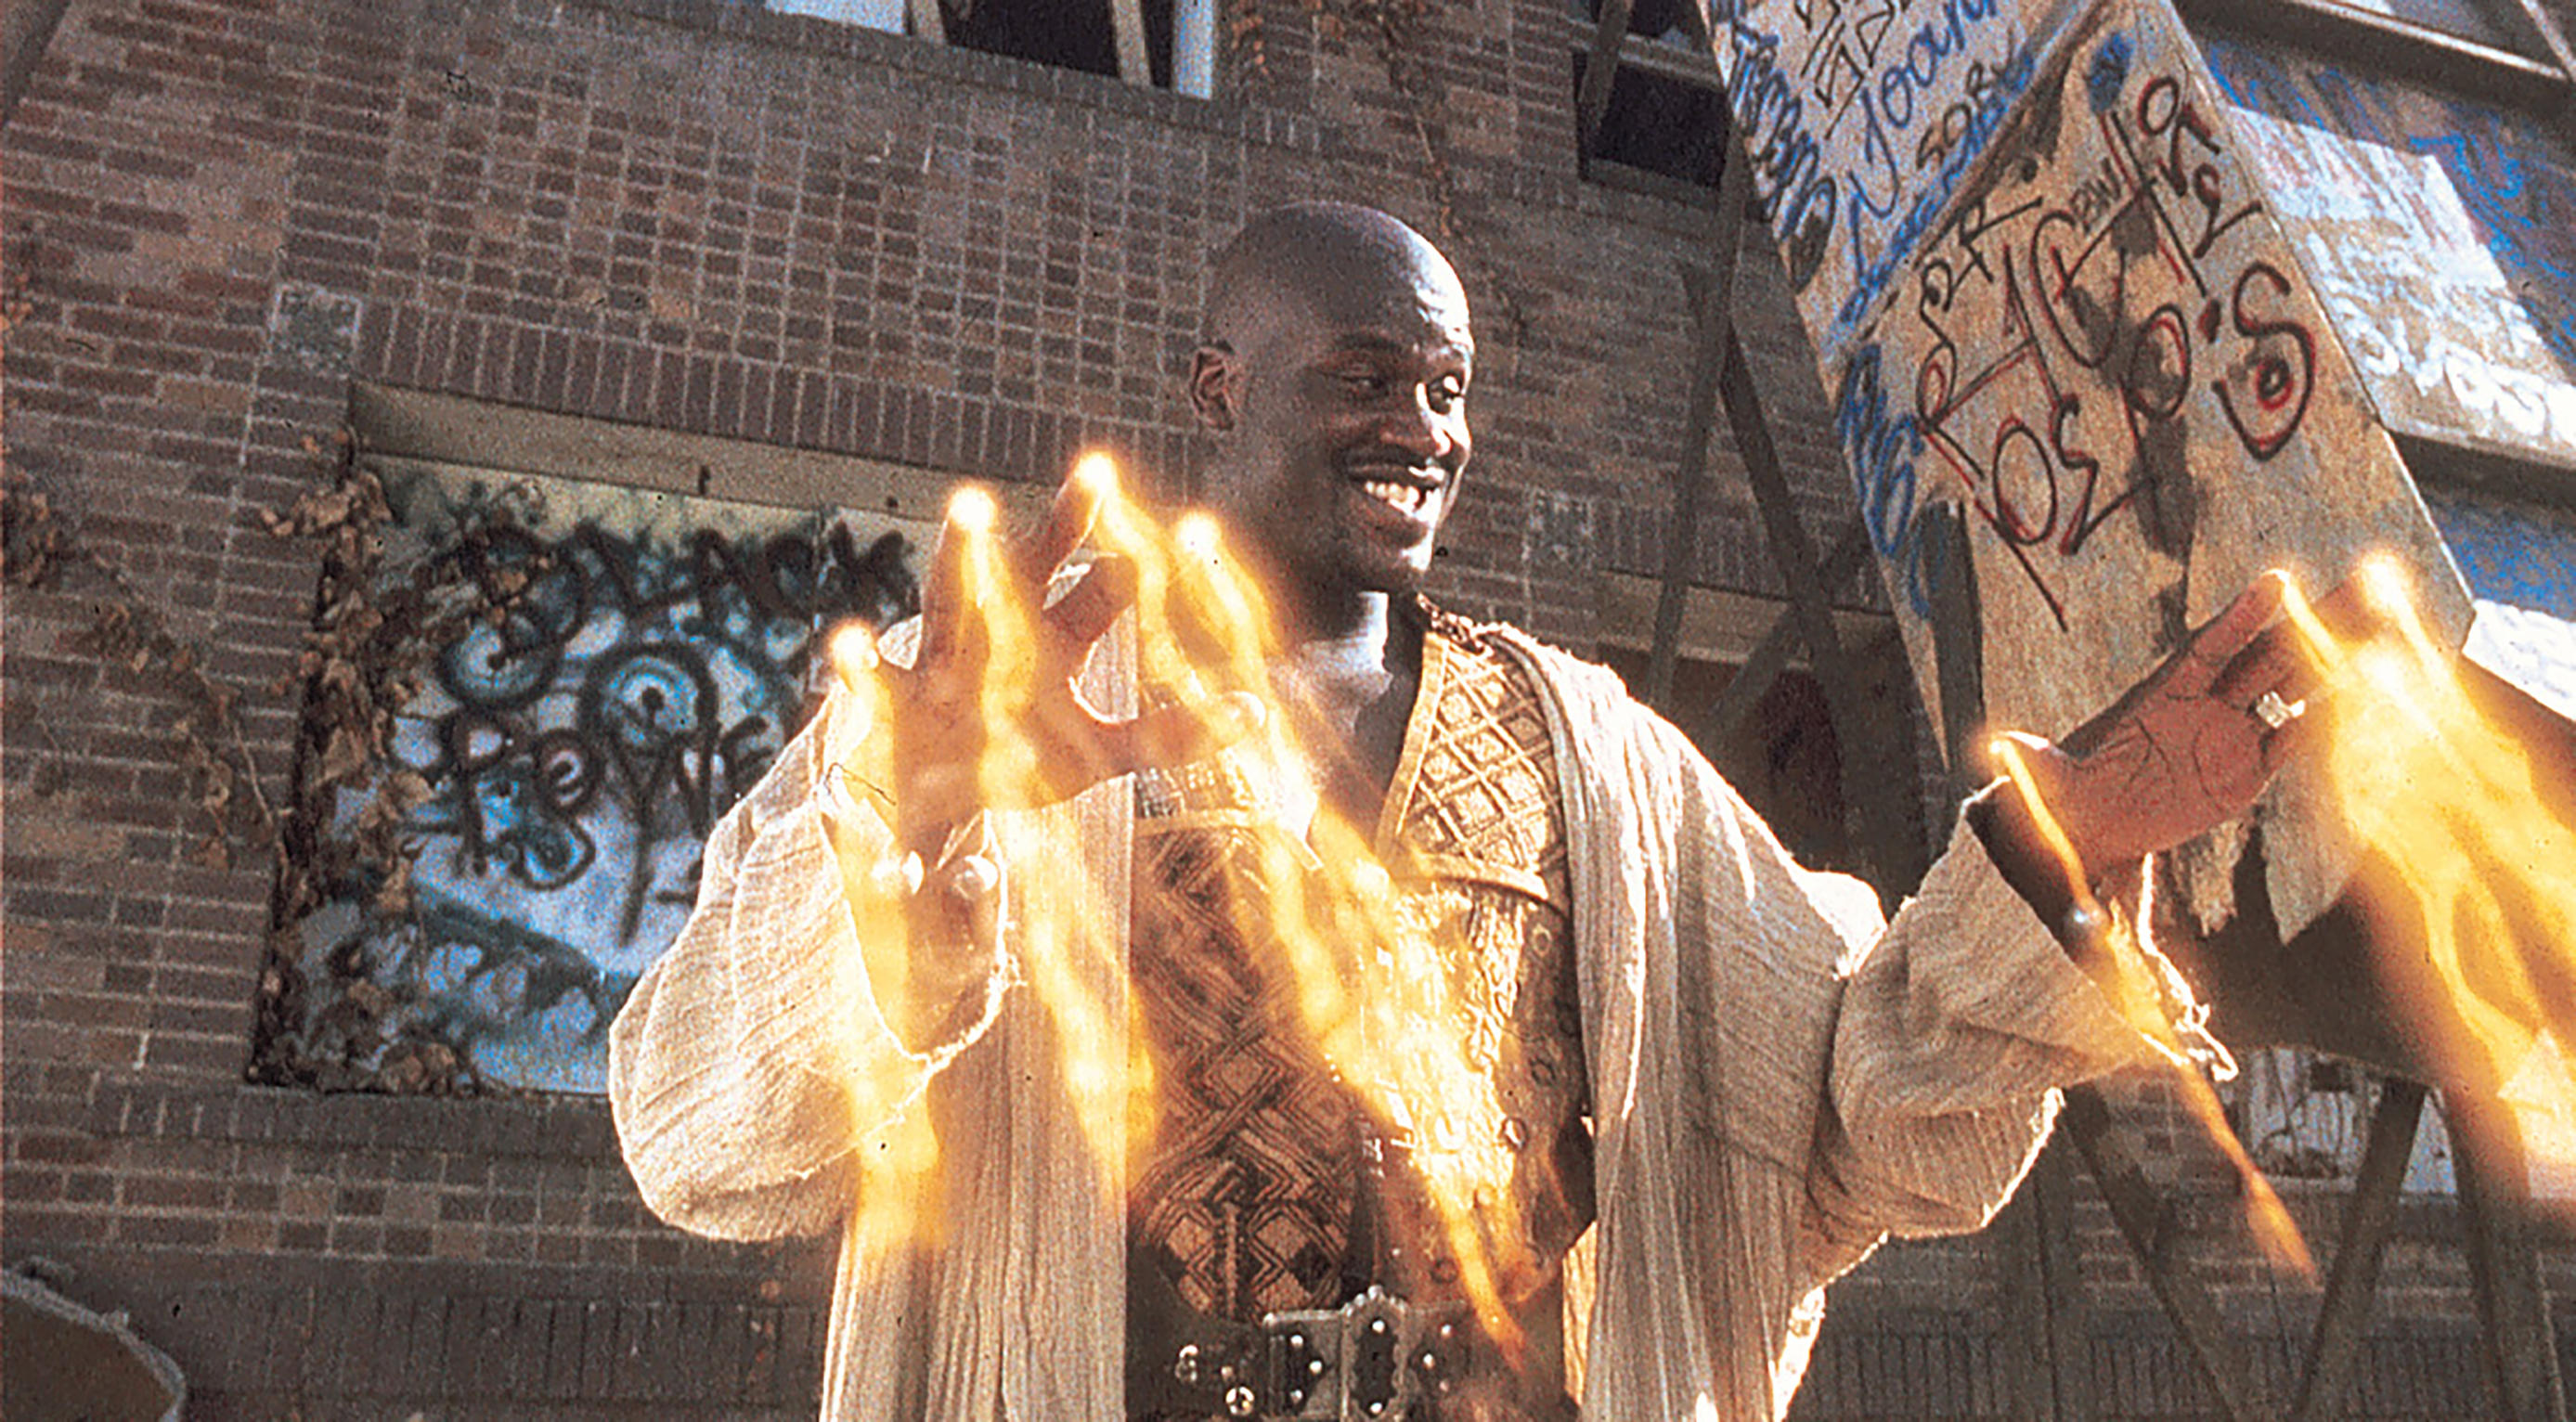 Shaquille O'Neal in Kazaam